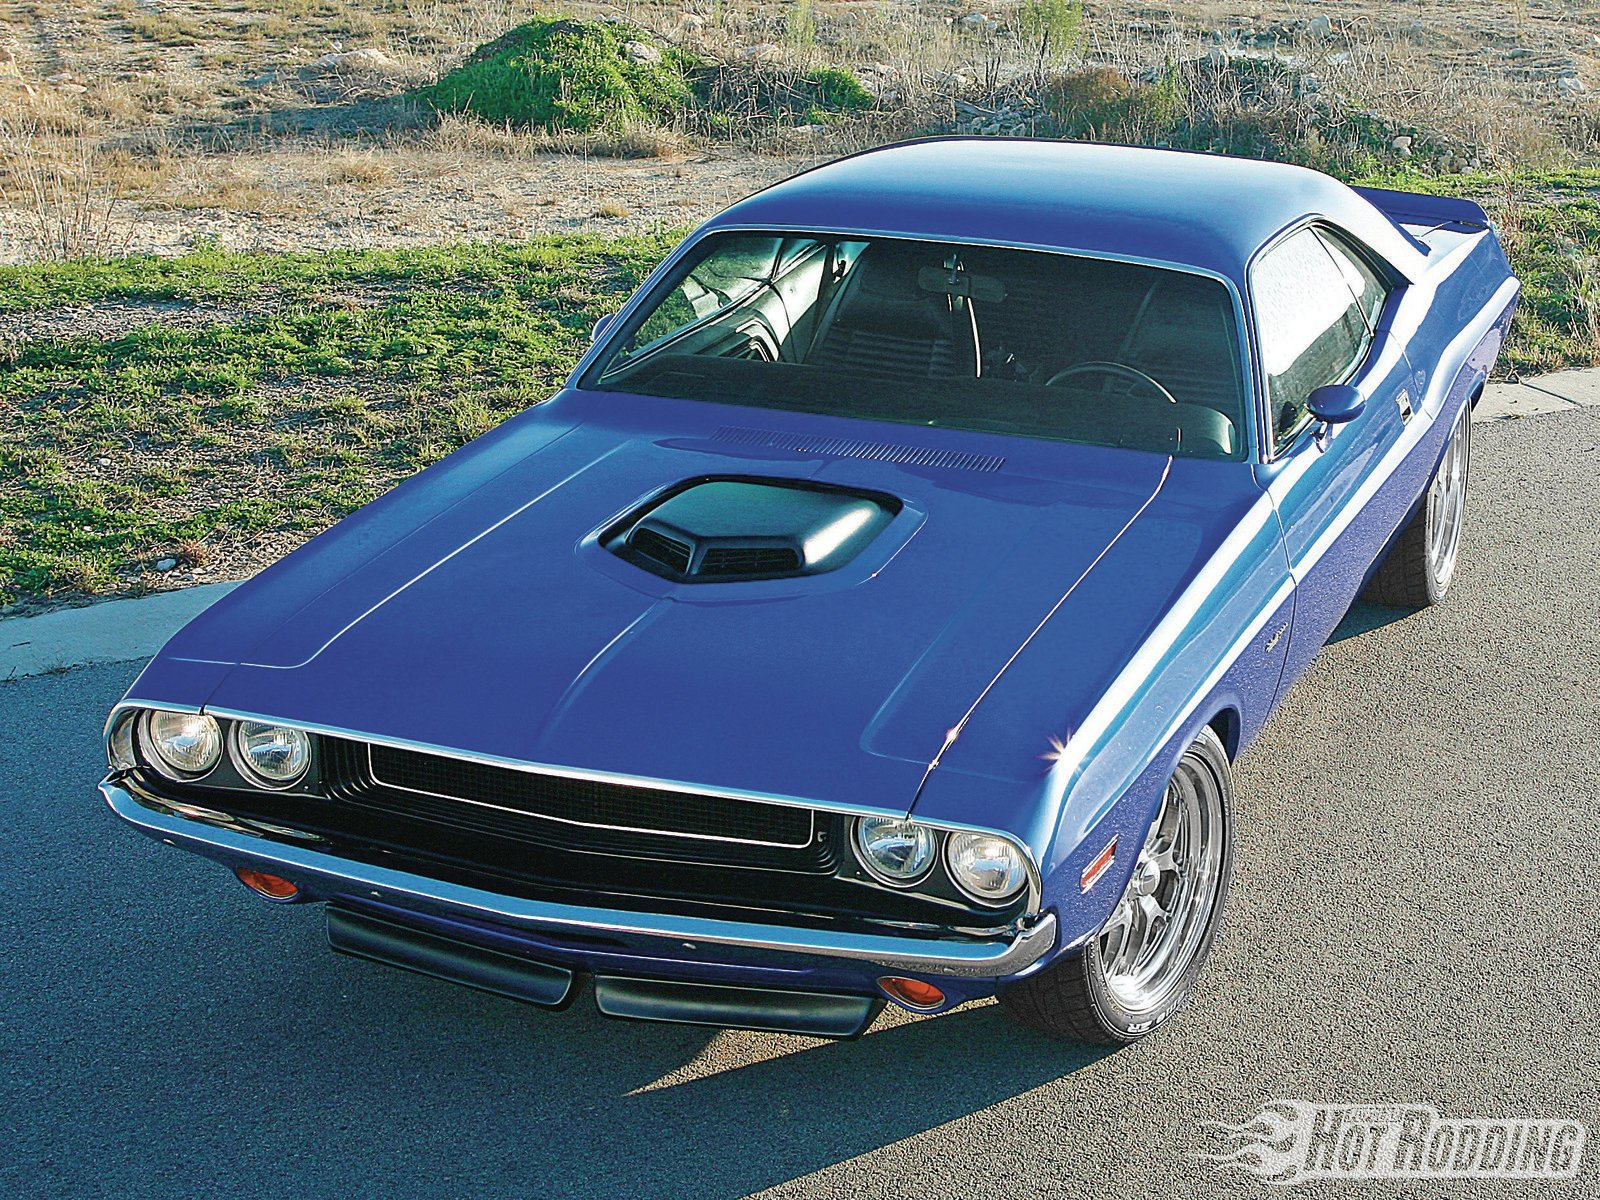 1970 dodge challenger wallpaper and background 1600x1200. Black Bedroom Furniture Sets. Home Design Ideas